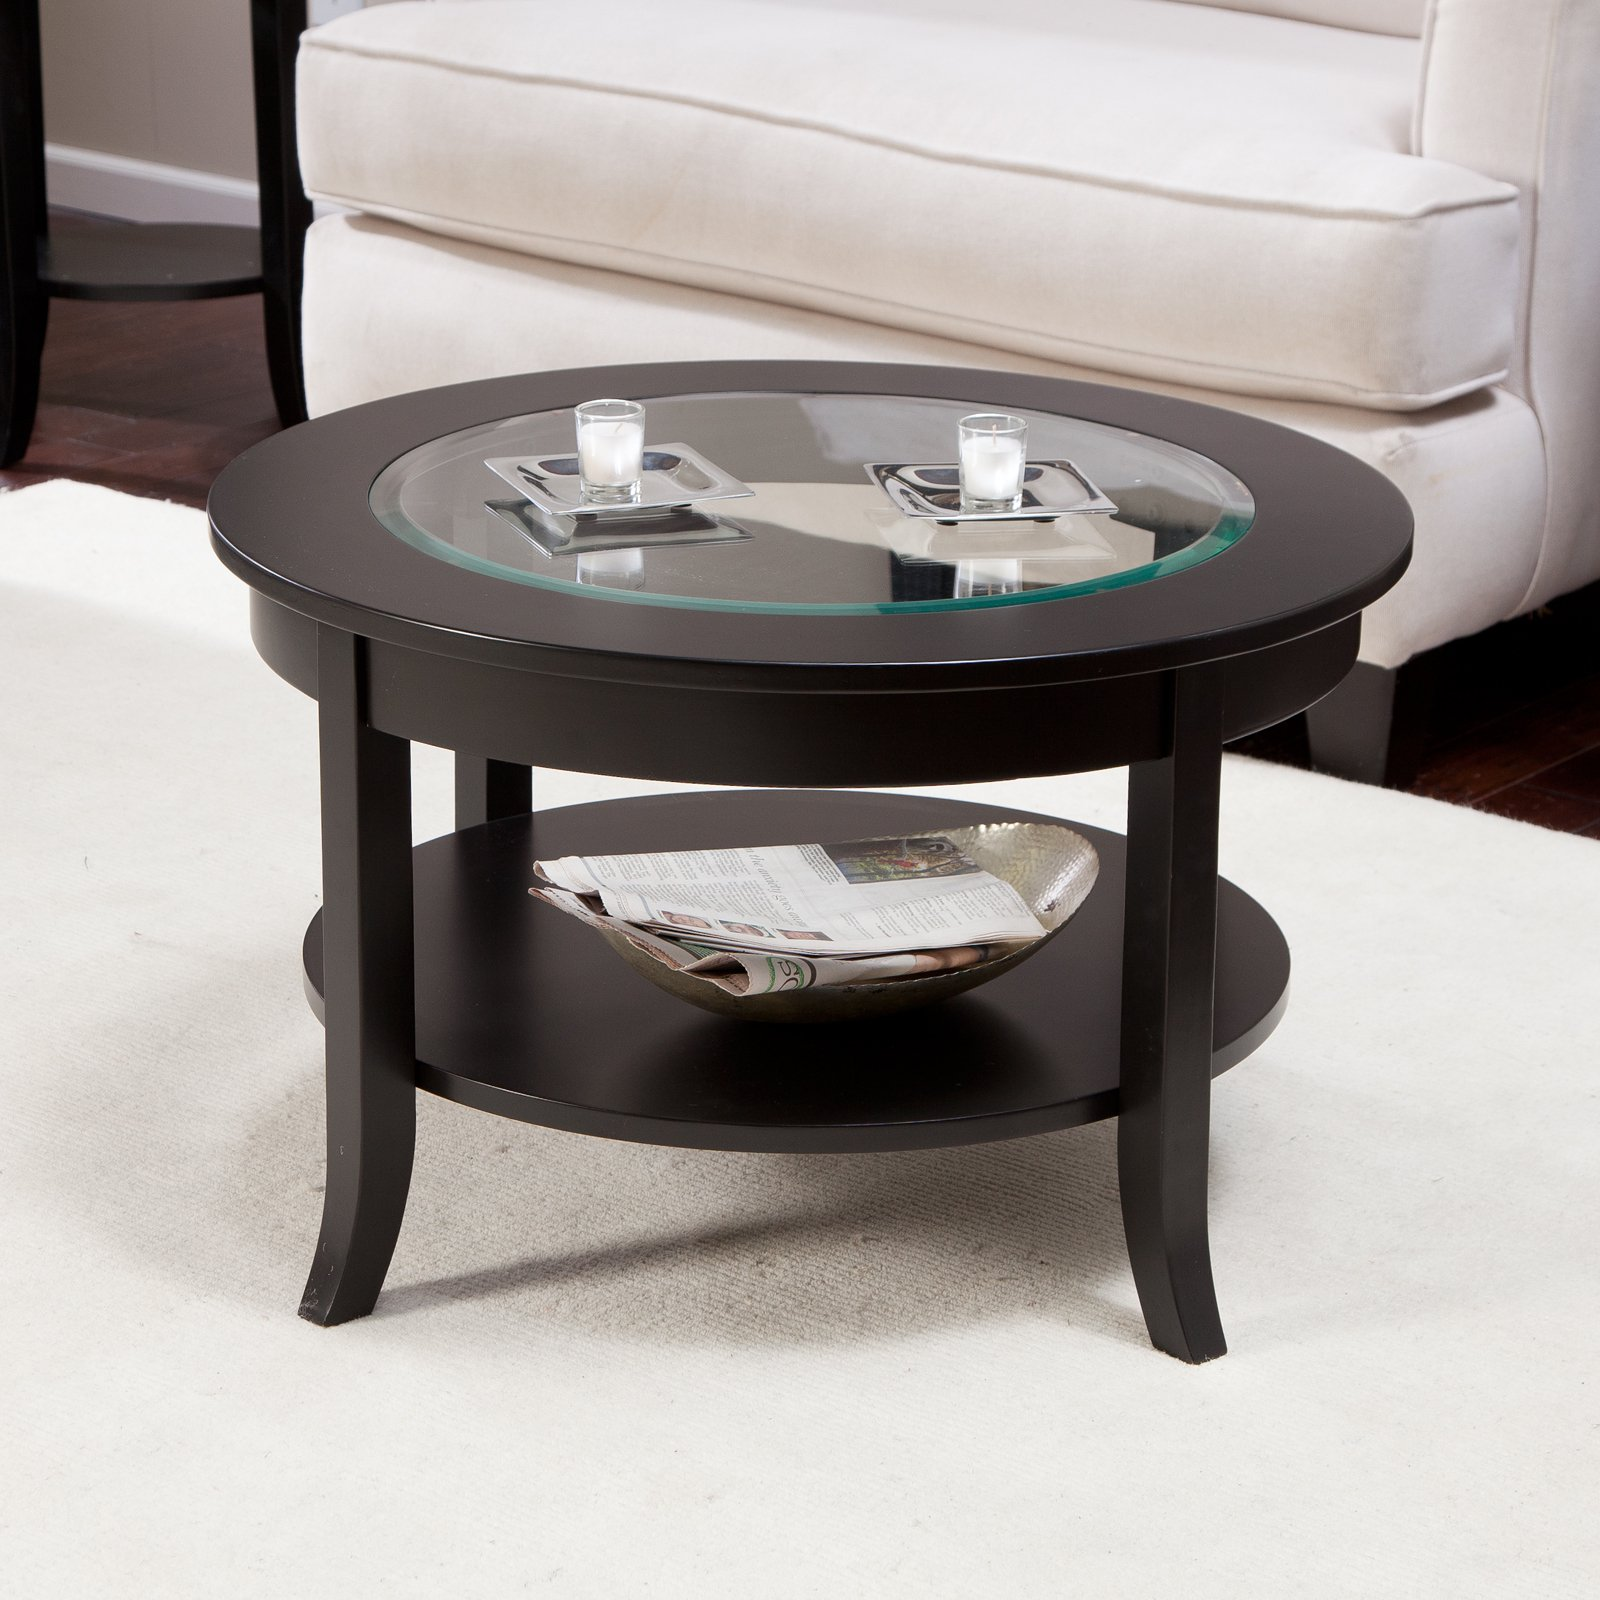 Why Do We Need A Glass Round Coffee Table Round Wood Glass Coffee Table Furniture Round Coffee Tables Round Wood Coffee Table (View 10 of 10)